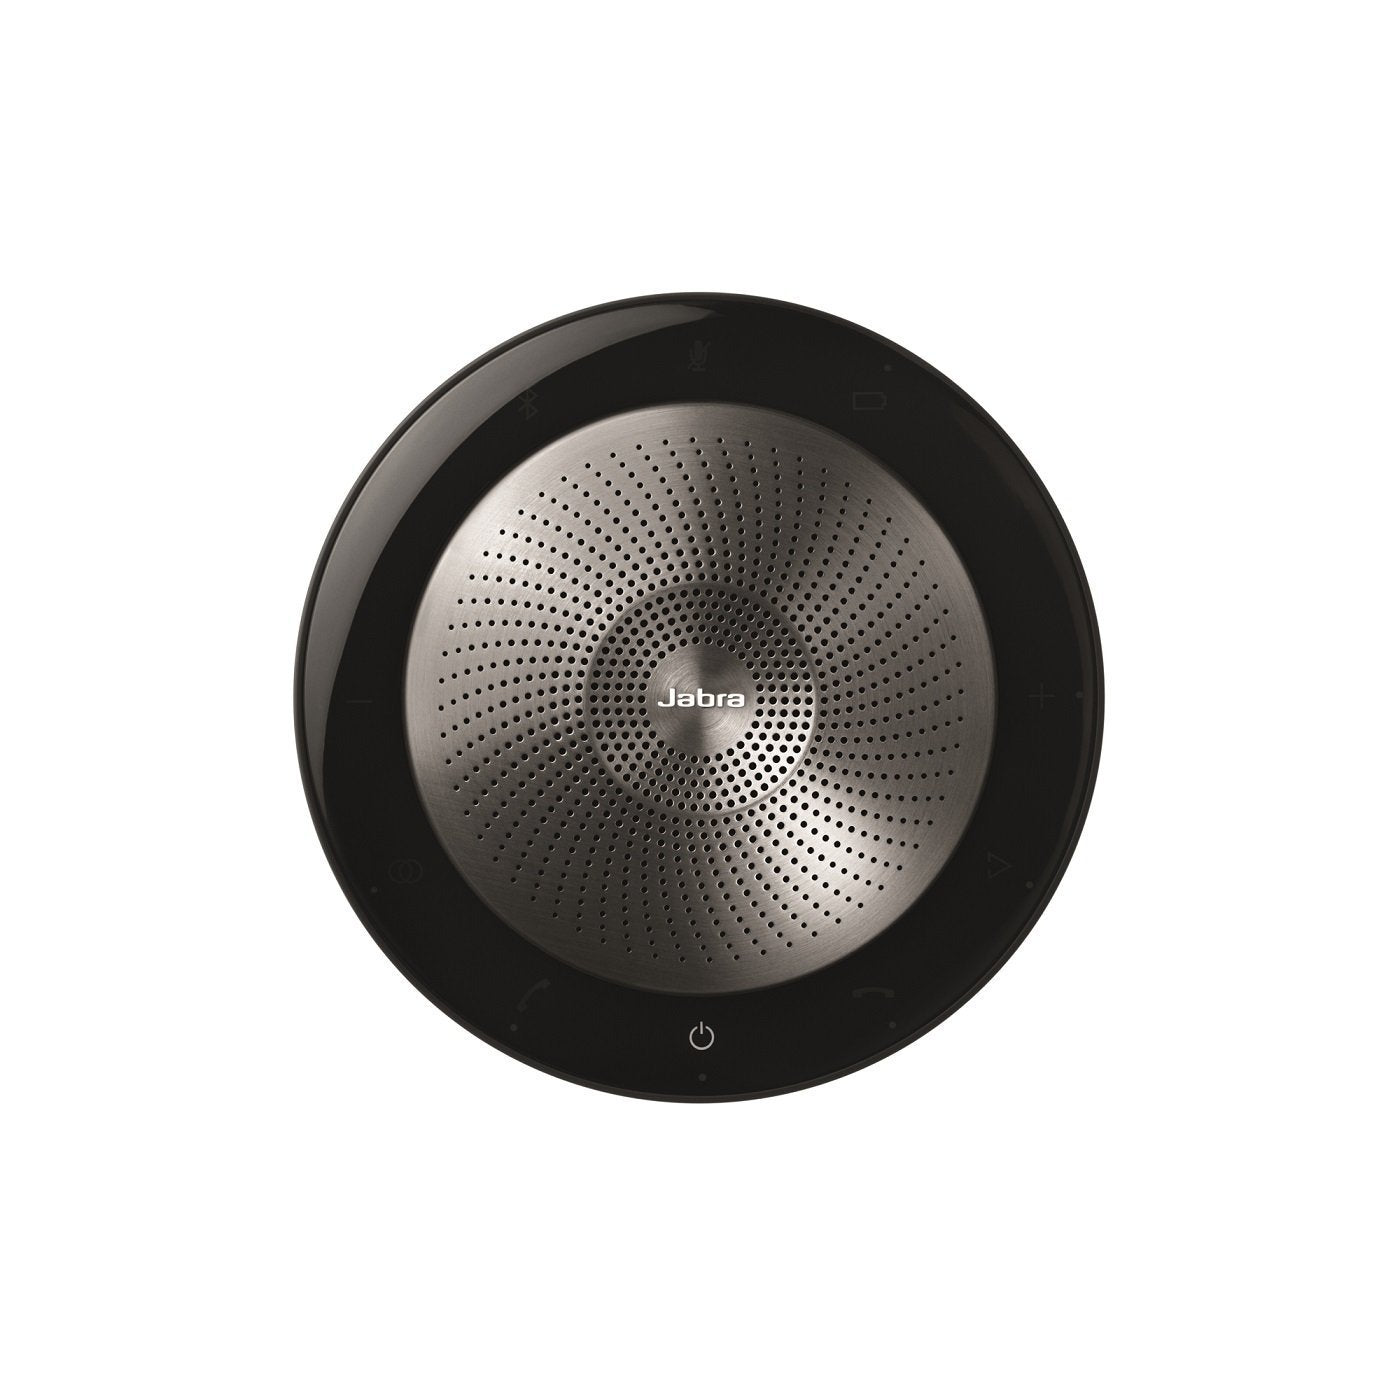 Jabra Speak 710 Bluetooth Desktop Speaker